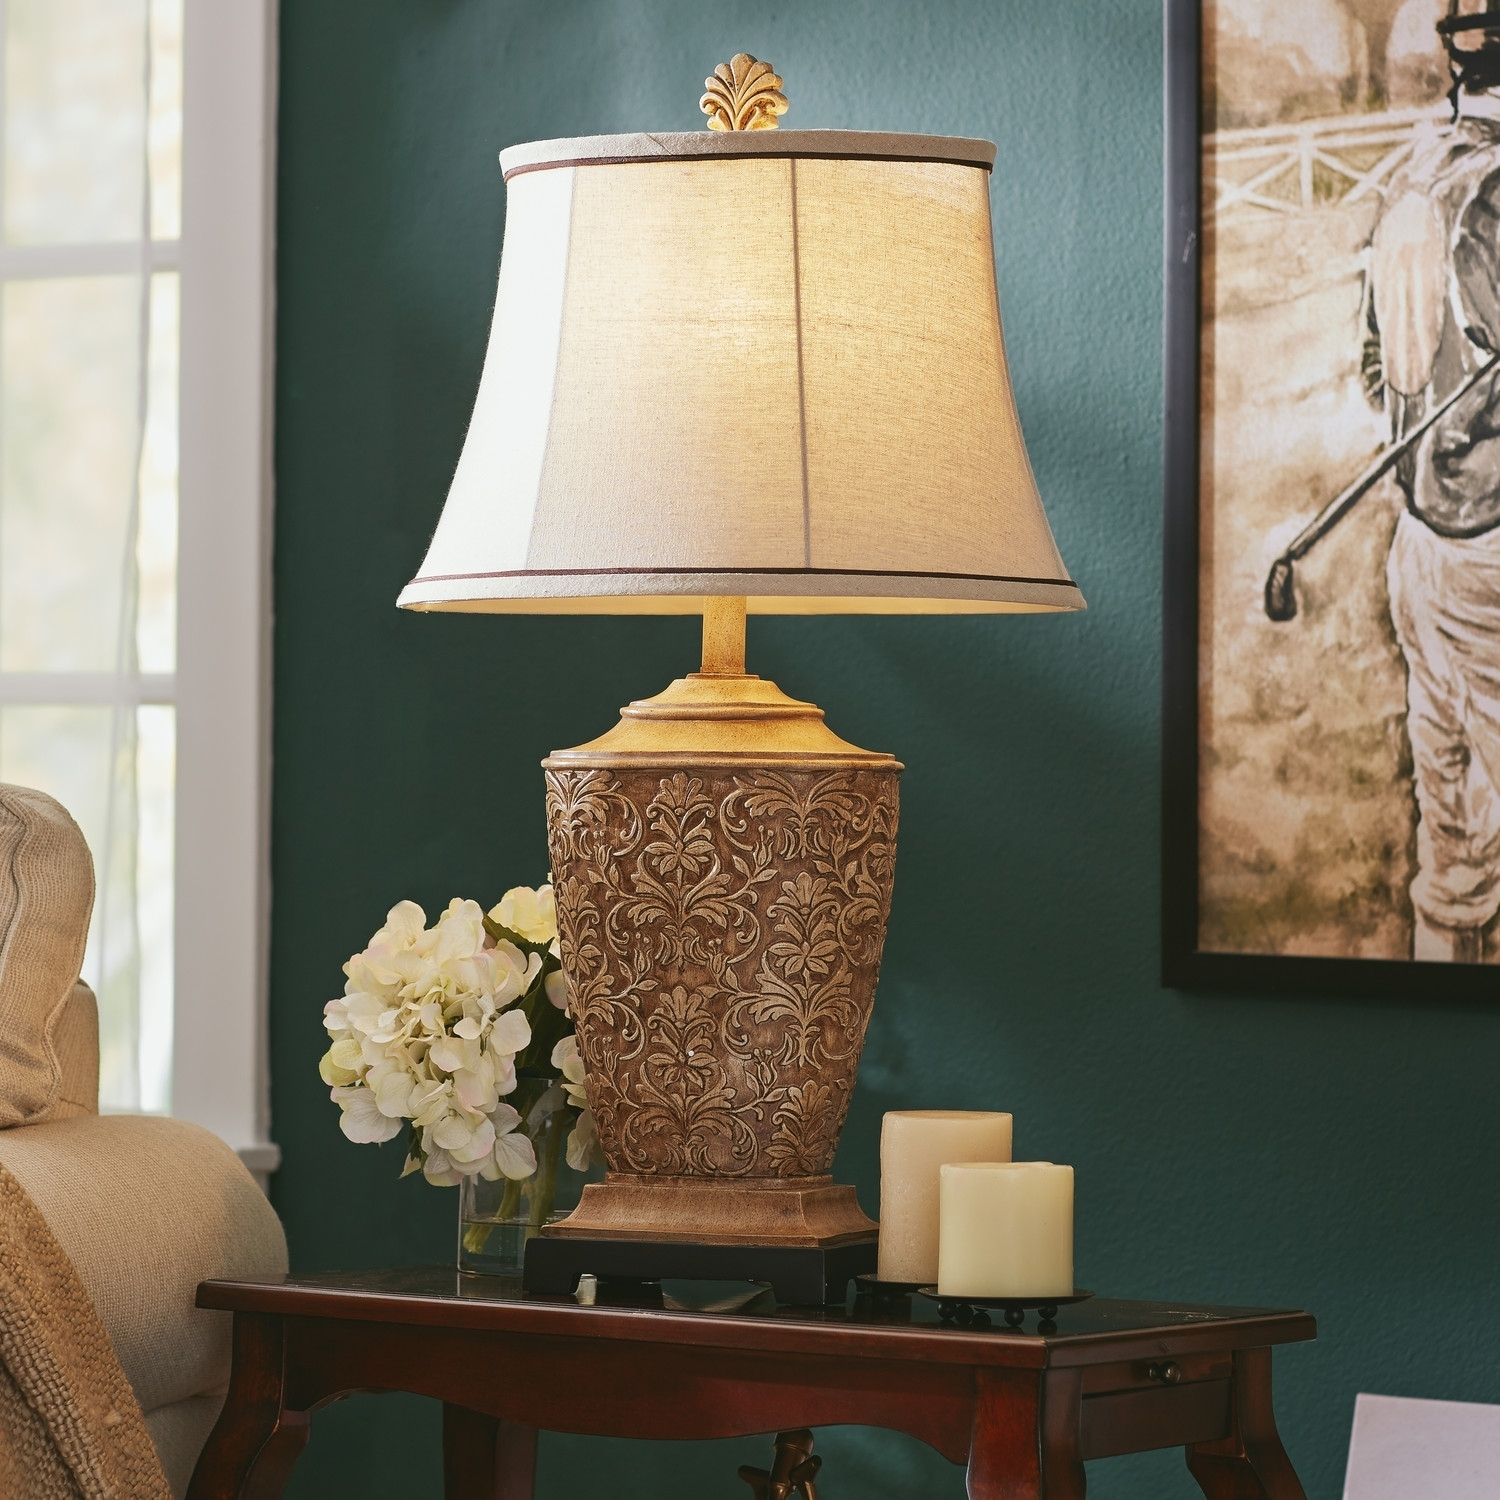 Popular Photo of Unique Table Lamps Living Room